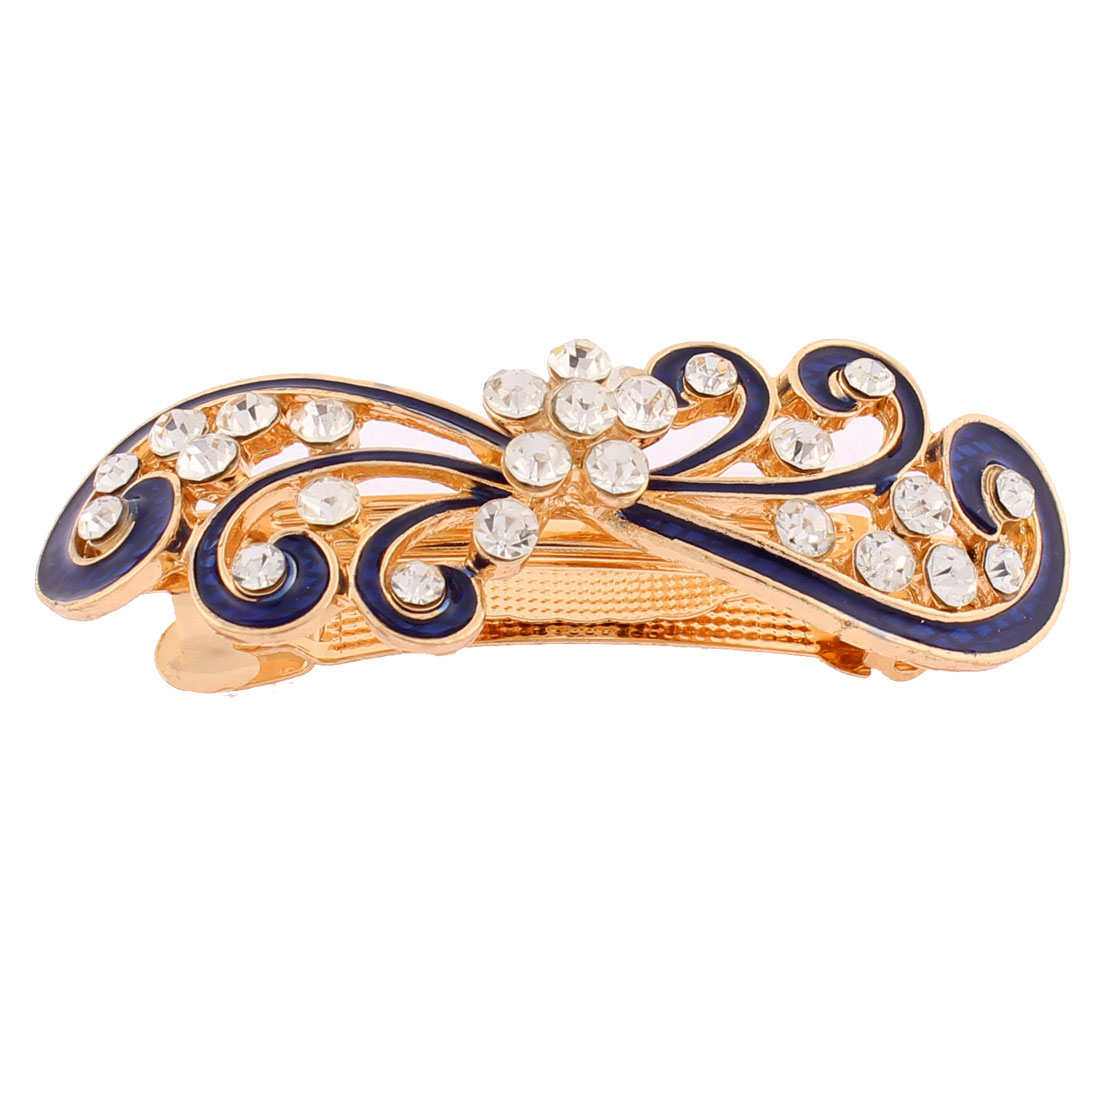 Women Plastic Rhinestones Inlaid Blue Floral Accent French Barrette Style Metal Hair Clip Hairpin Decor Gold Tone